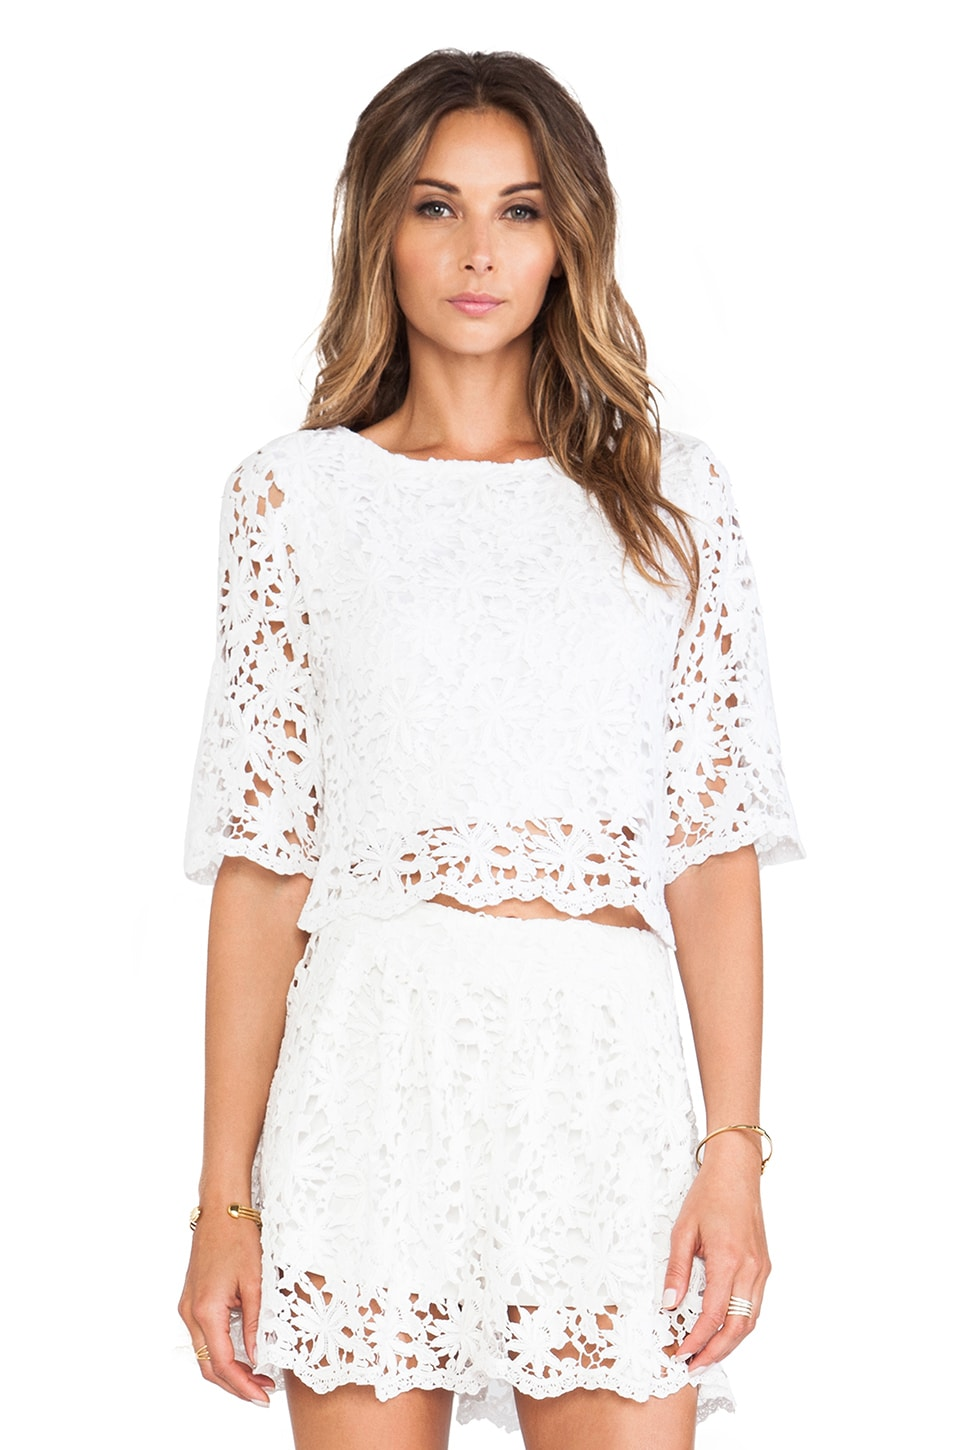 Nightcap Daisy Crochet Crop Top in White